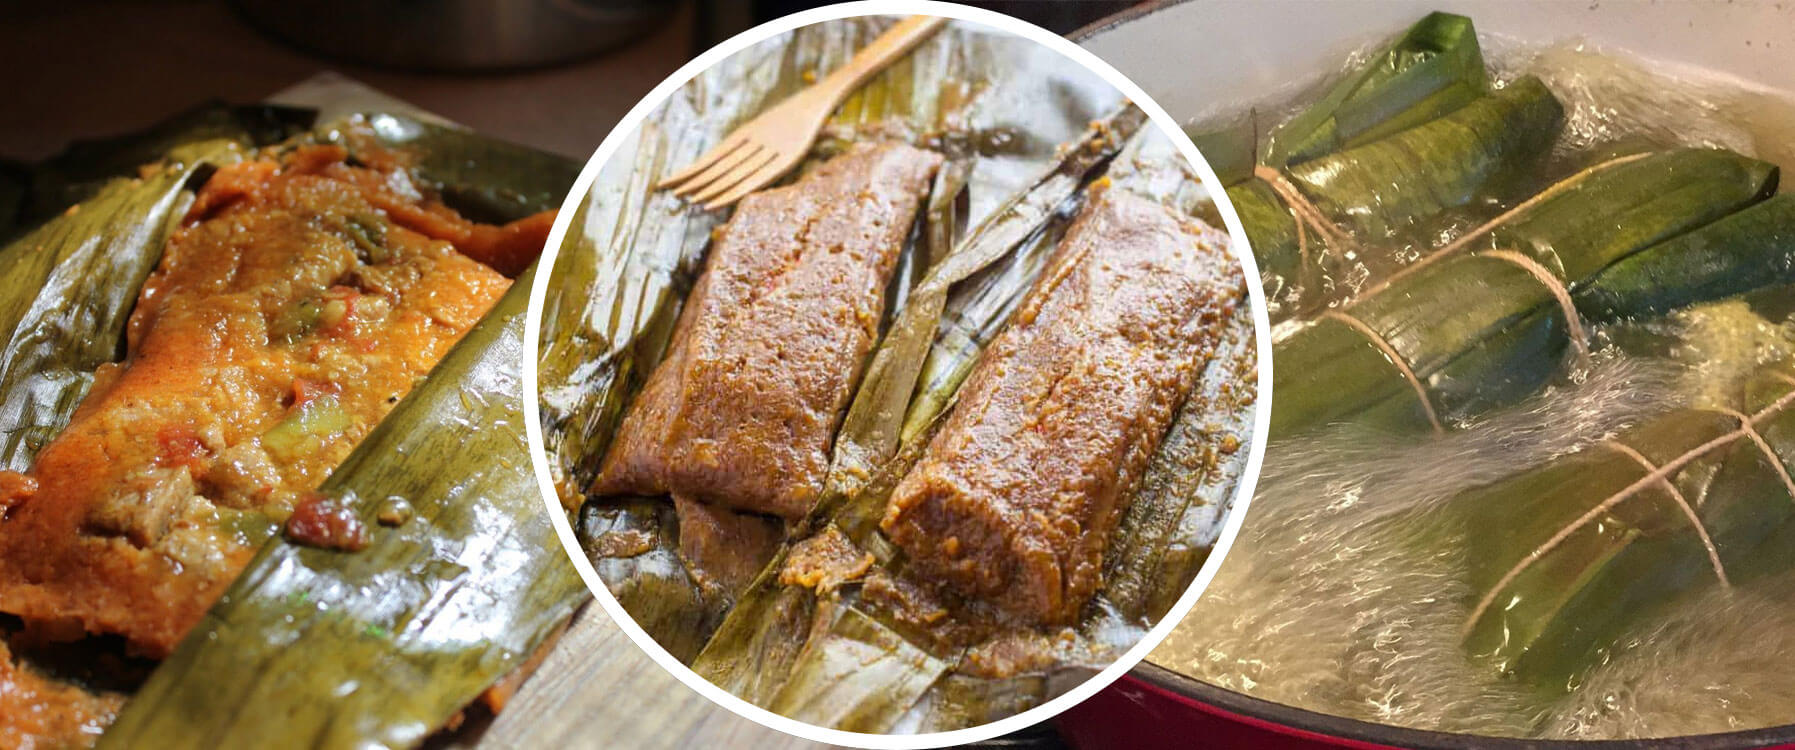 What Are Puerto Rican Pasteles